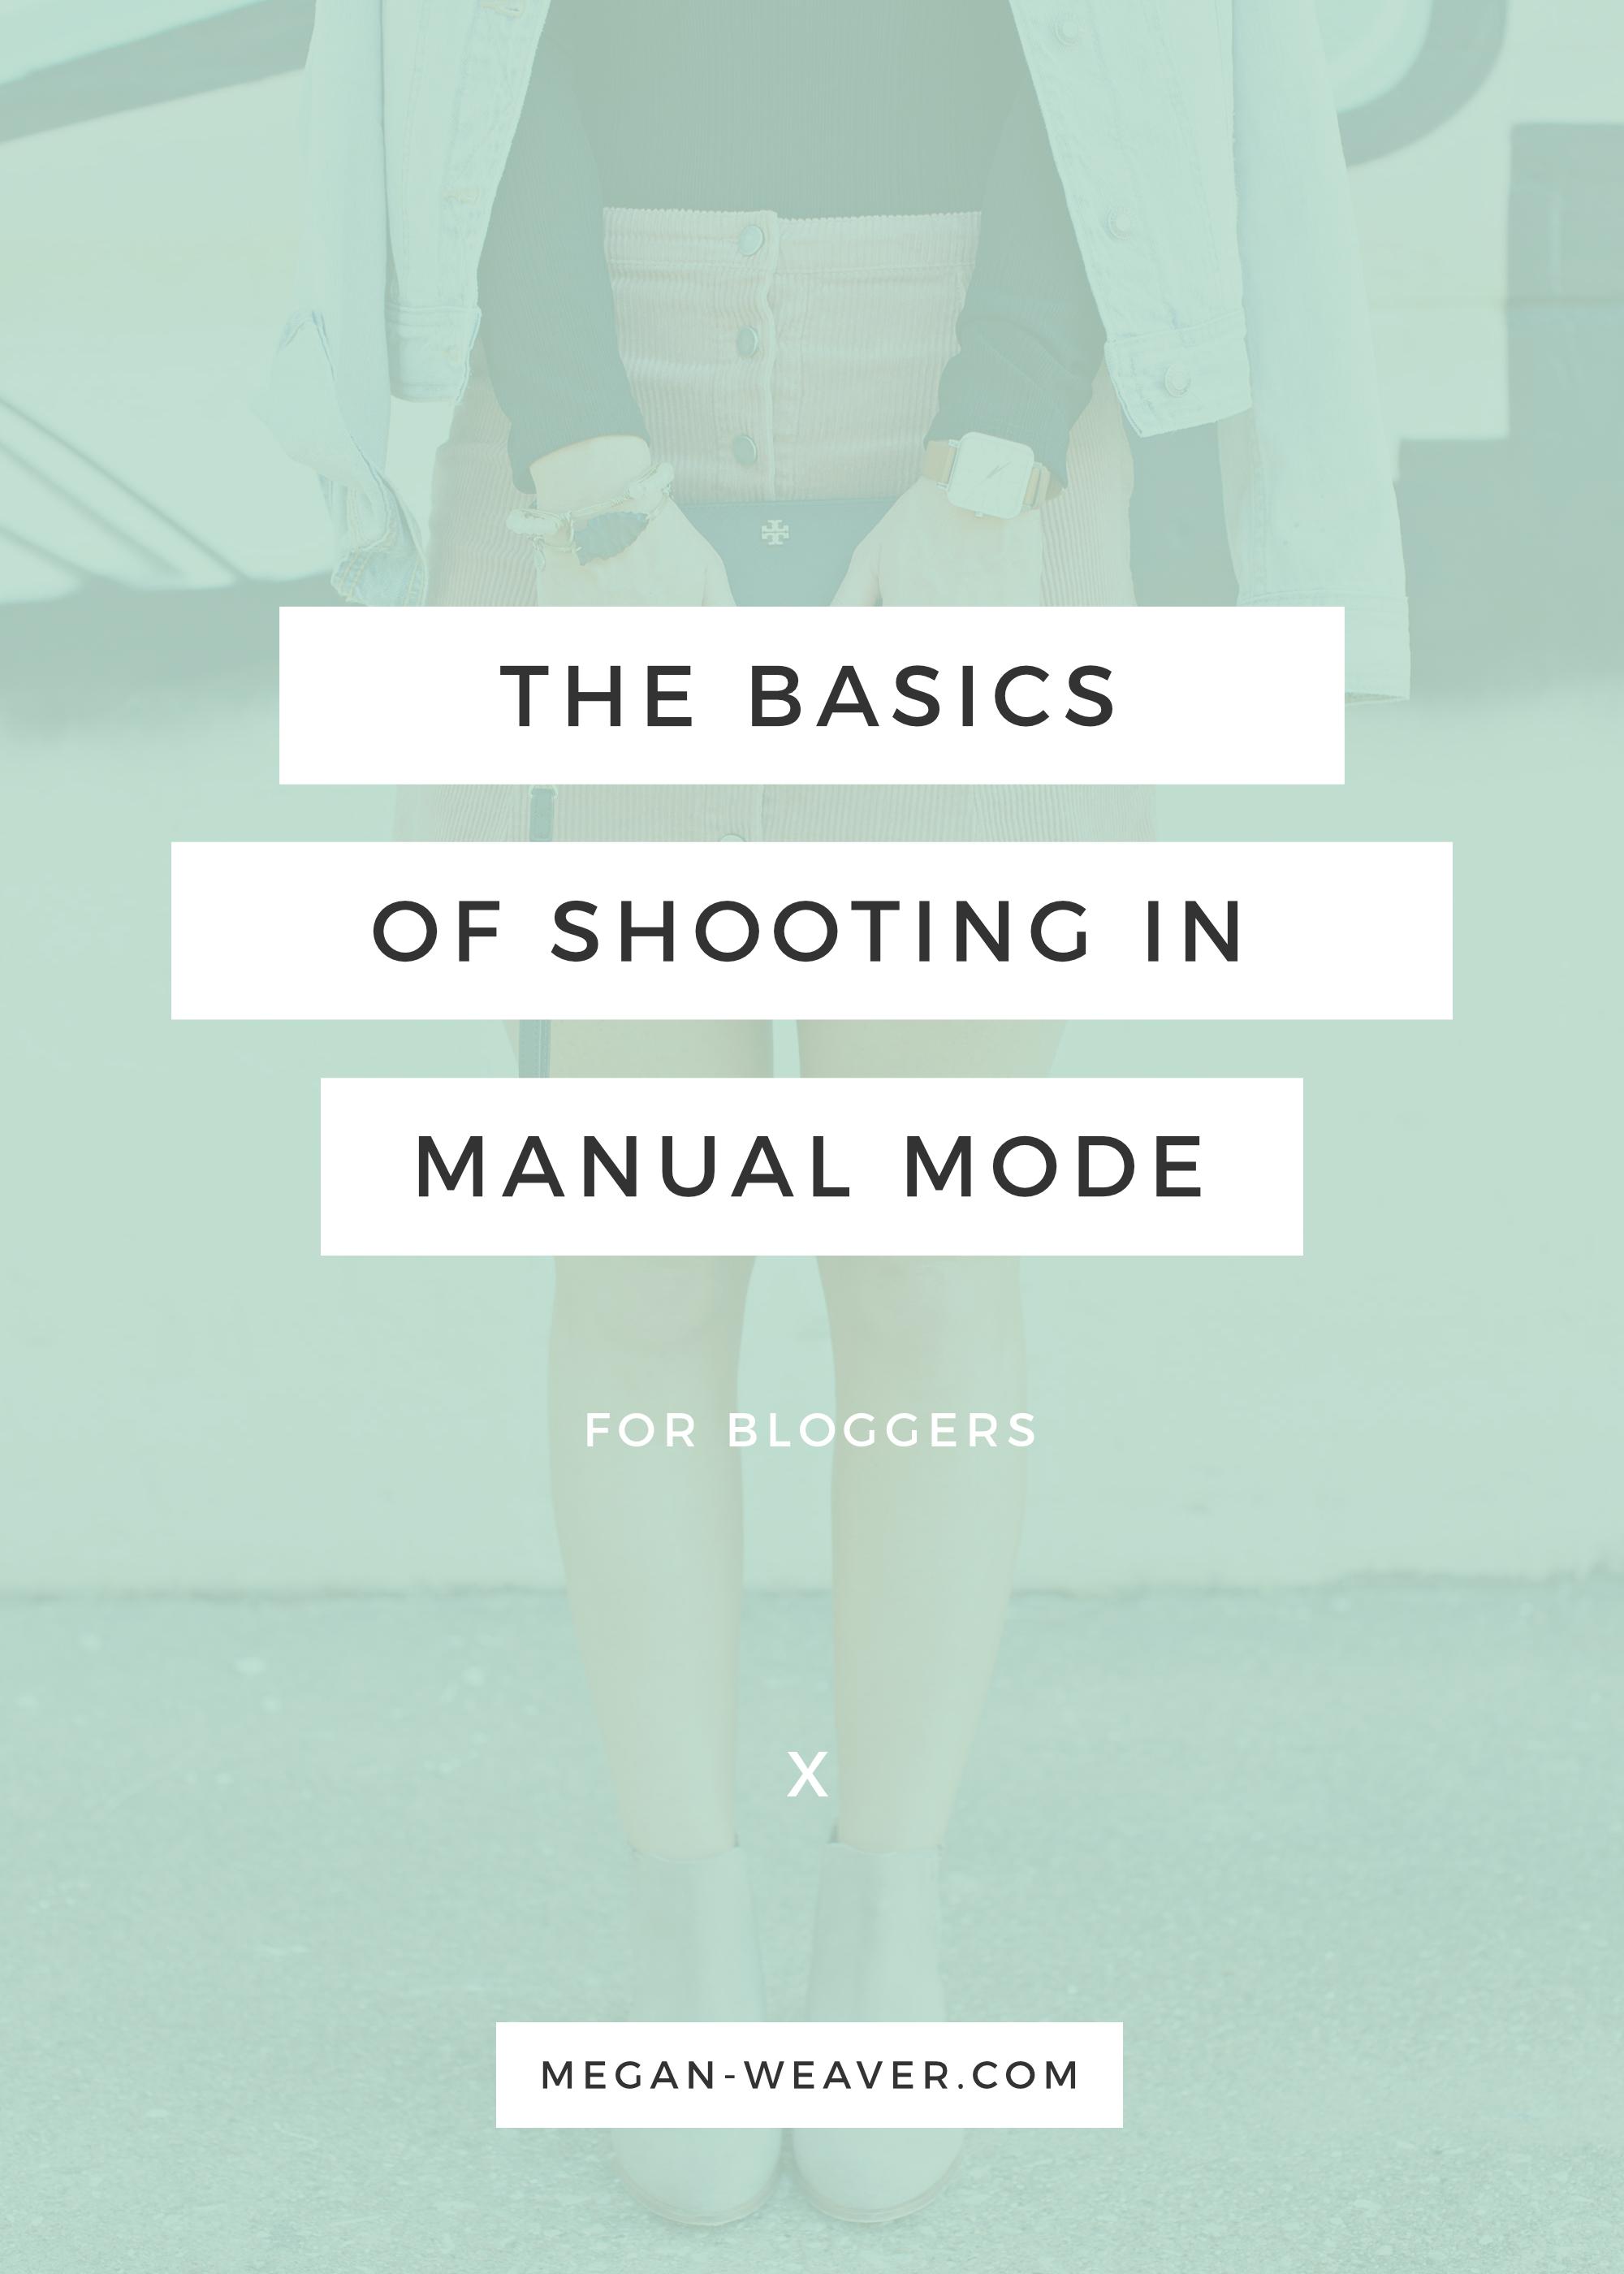 Shooting in manual mode can be tricky, but if you want the best photos for your blog, it's definitely a skill worth learning. Luckily, we've made it easy for you with this basic tutorial! You'll be a pro in no time.